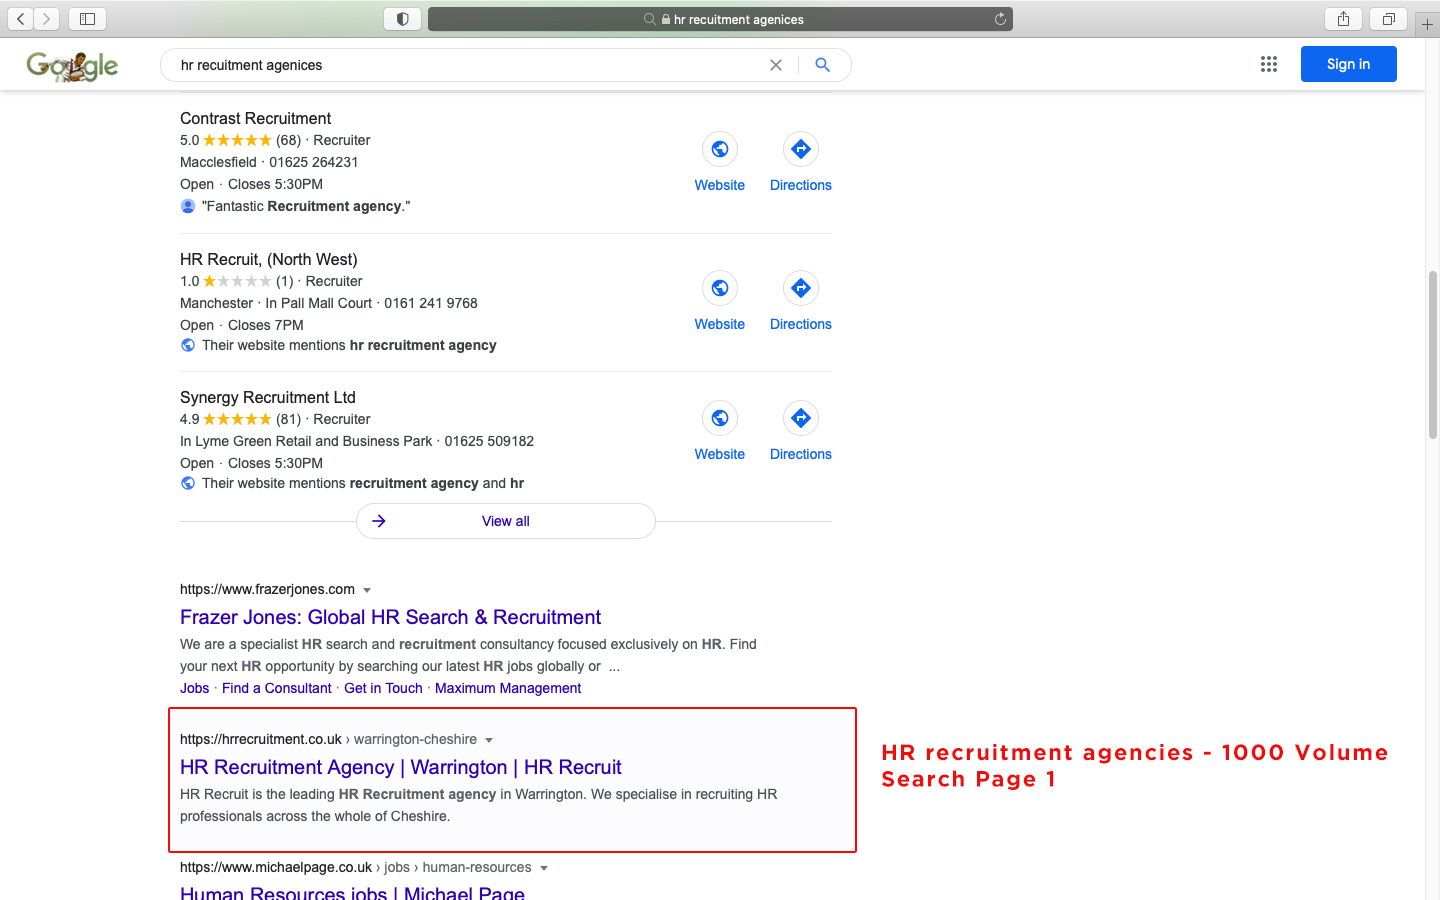 HR recruitment agencies 1000 Volume Search Page 1